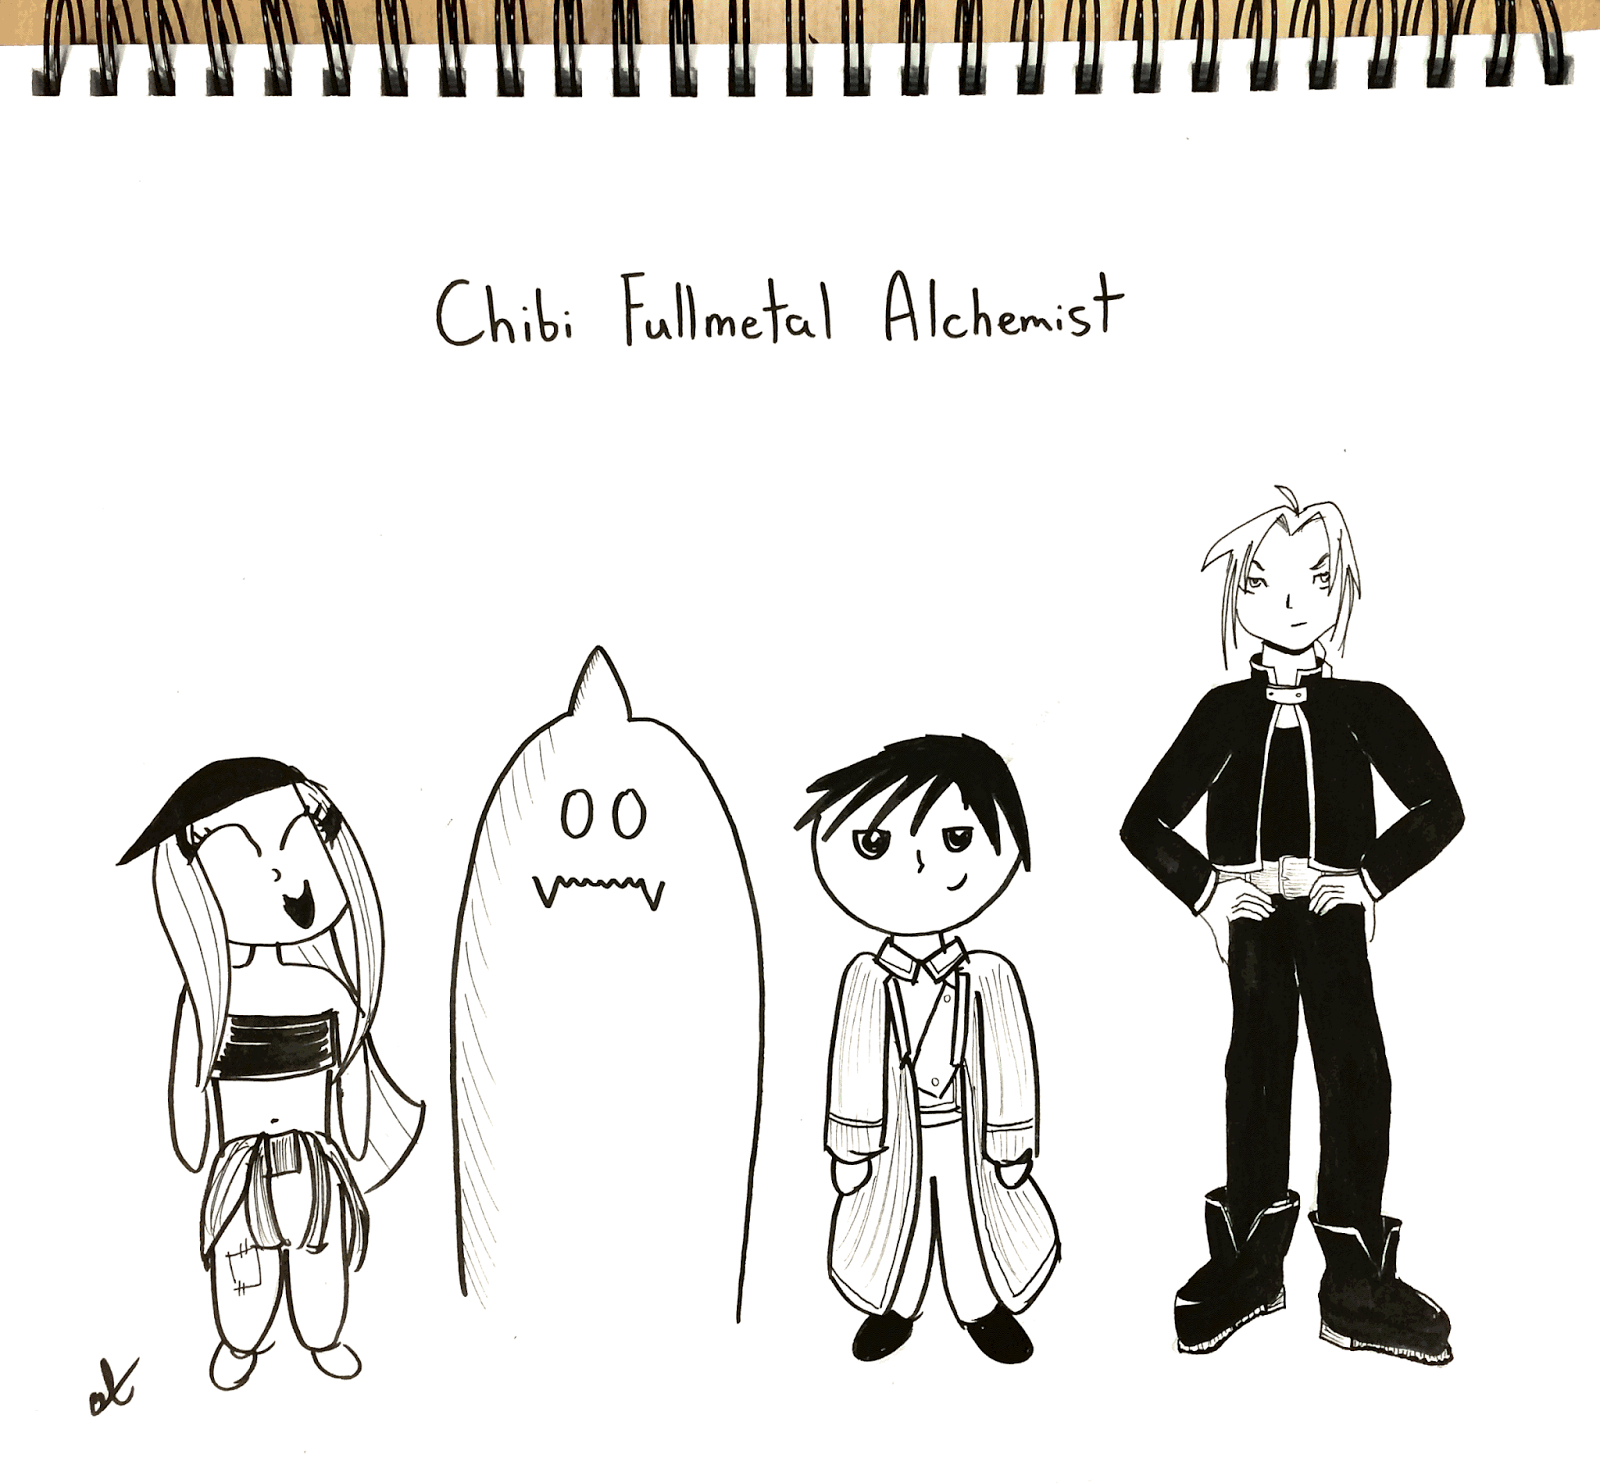 2015 inktober samples annie tohill comic featuring characters from fullmetal alchemist